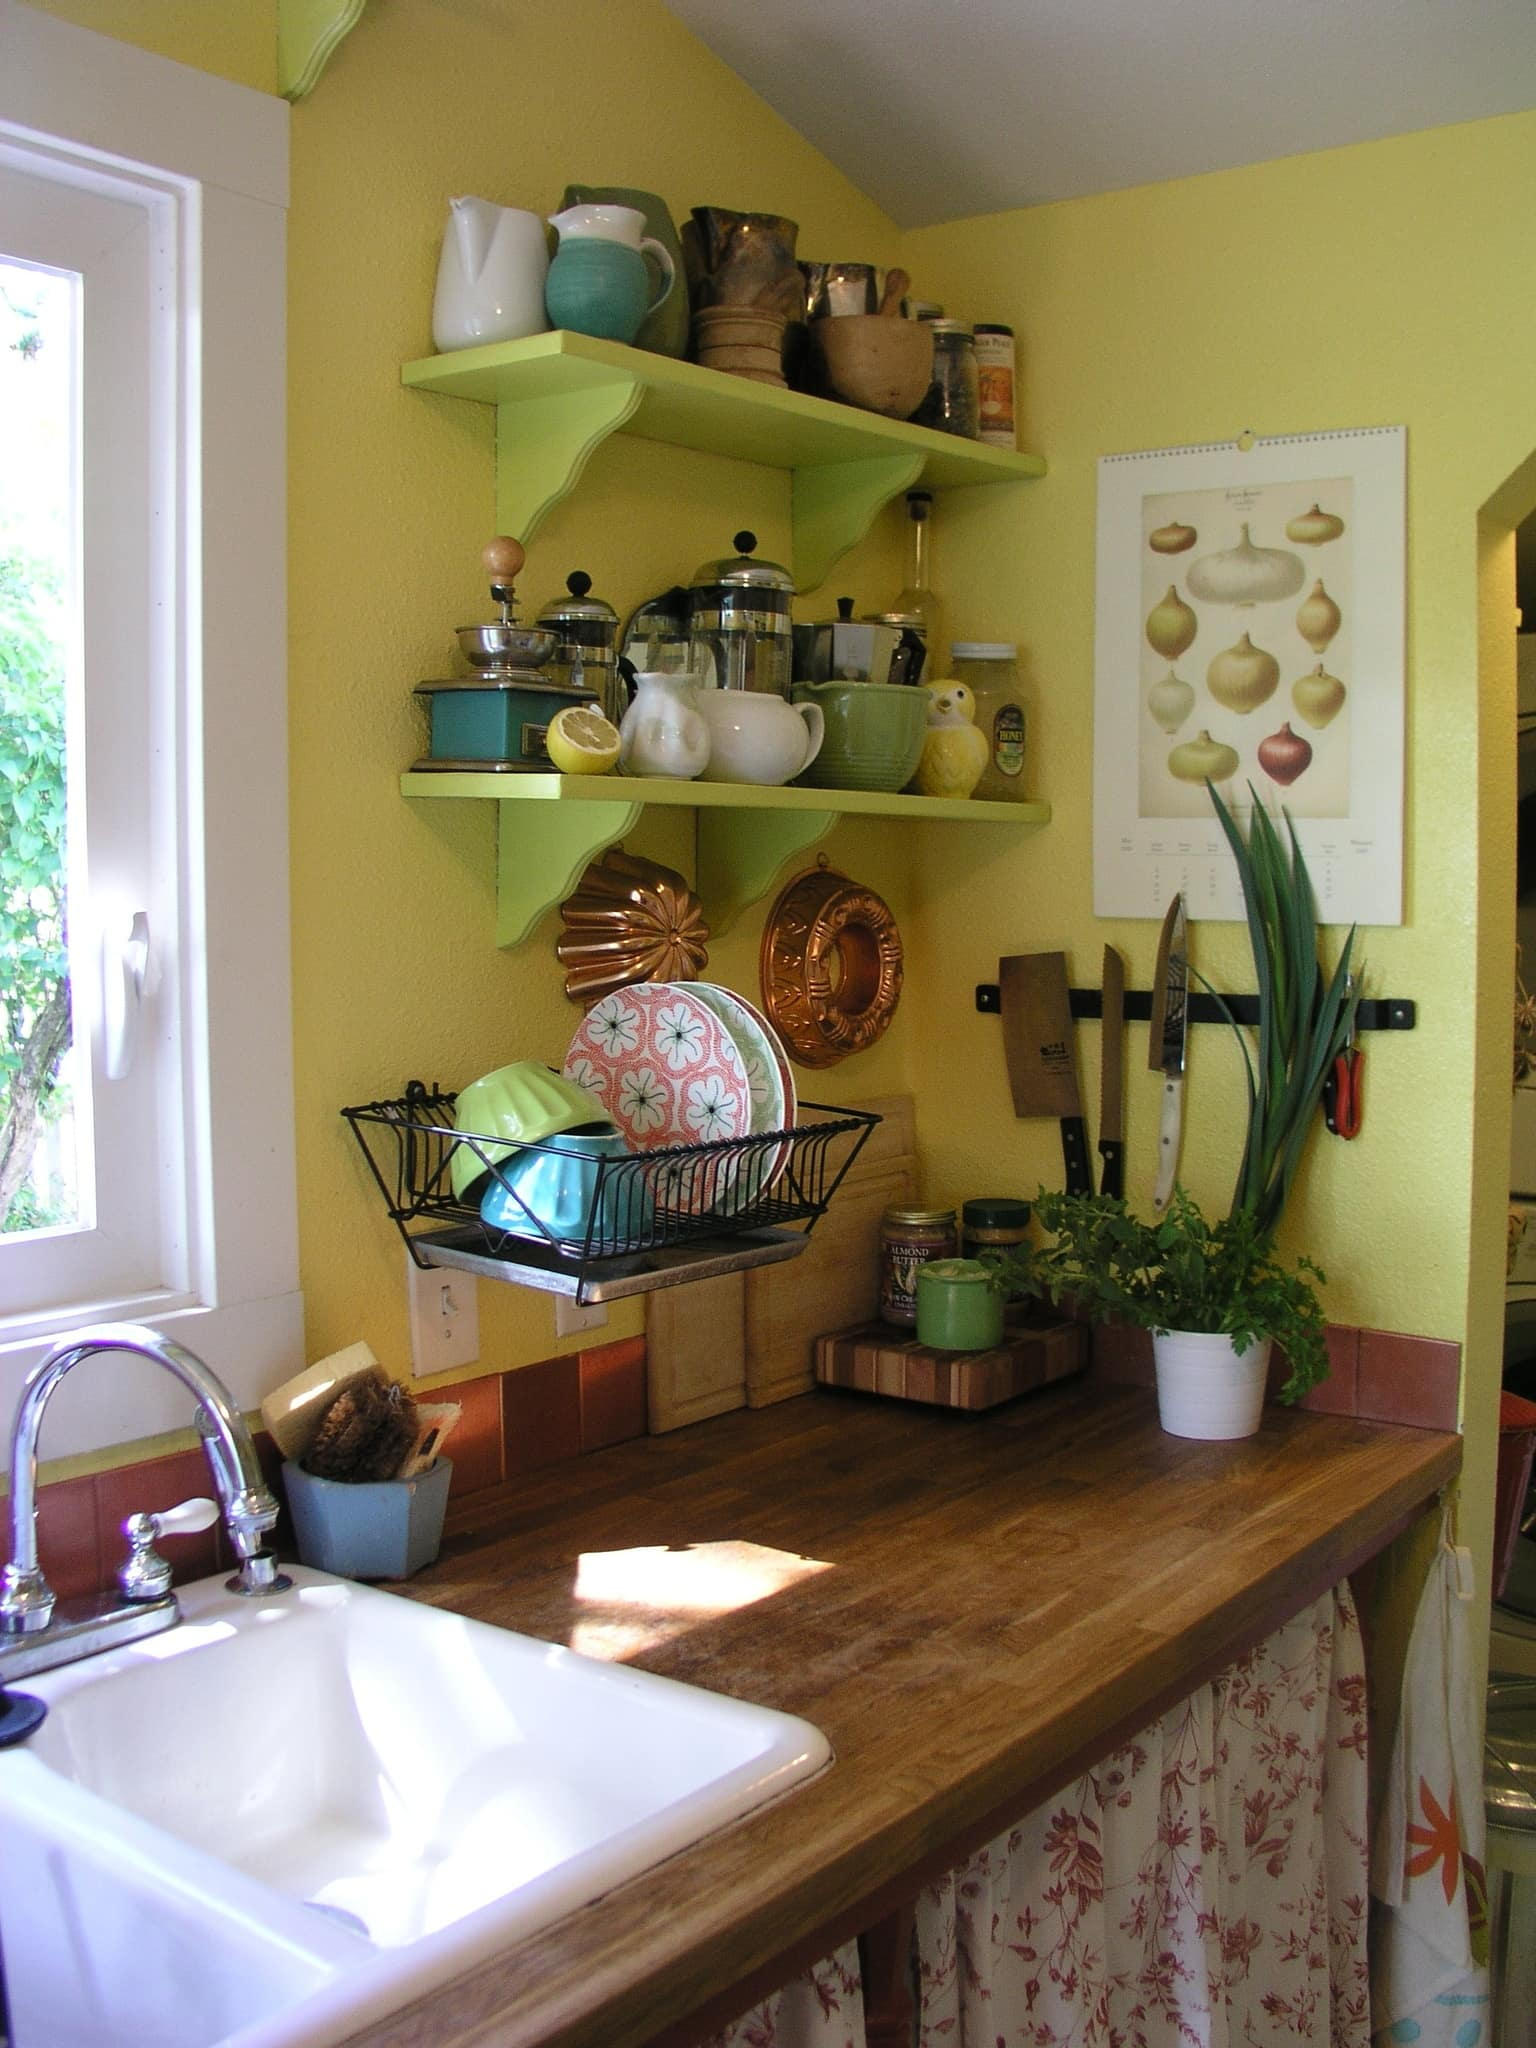 Ariana's Cheerful, Colorful Portland Kitchen: gallery image 3